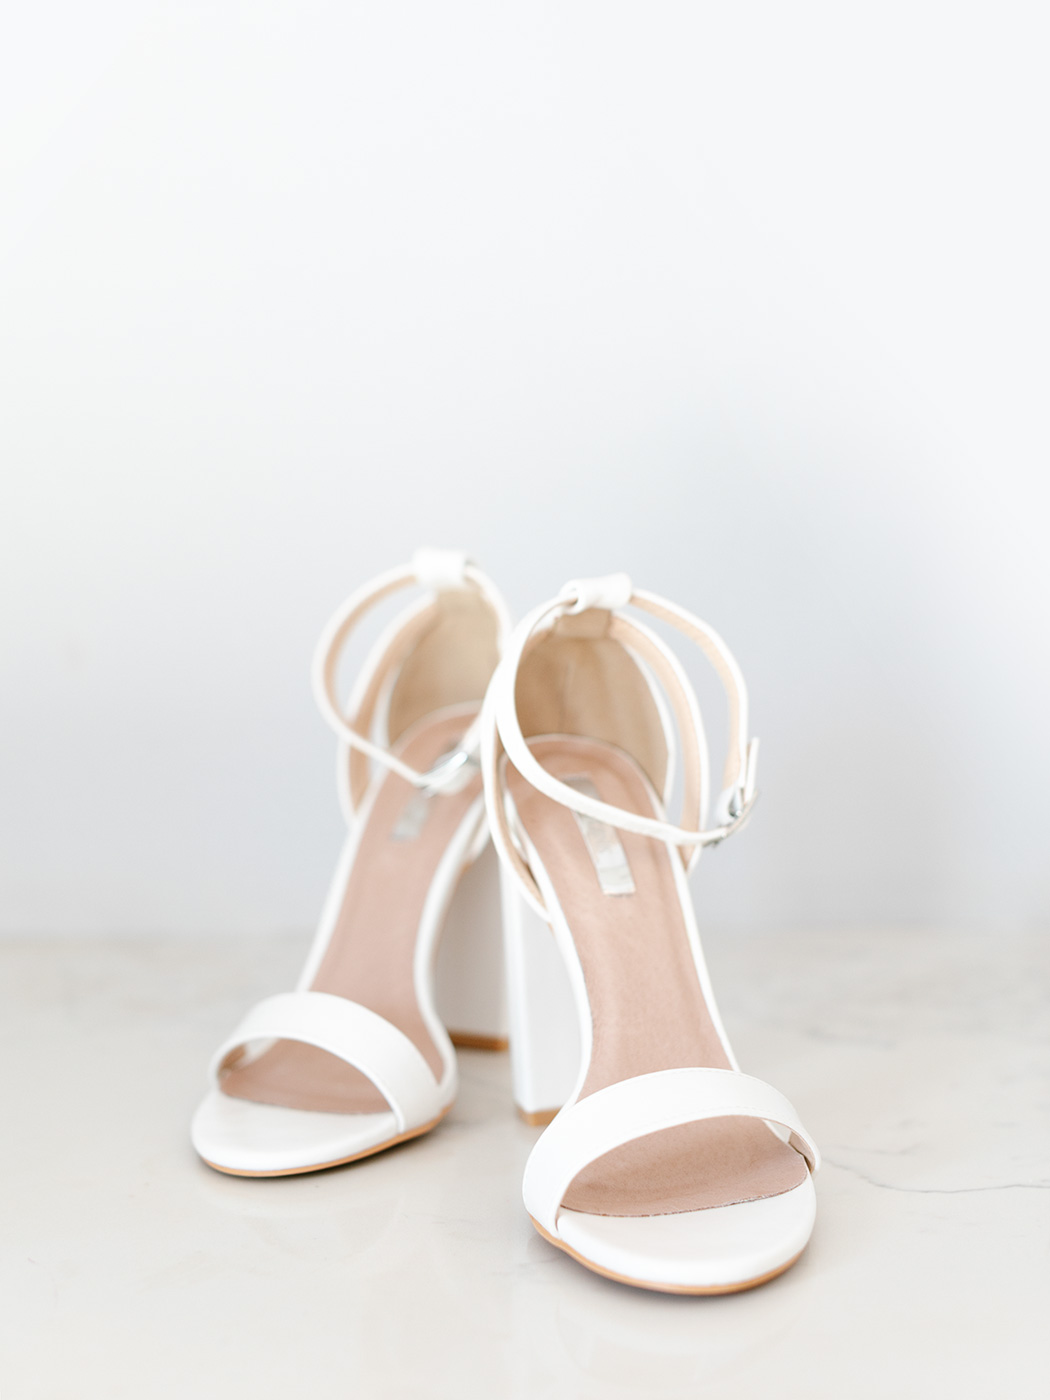 Wedding Shoes | Rensche Mari